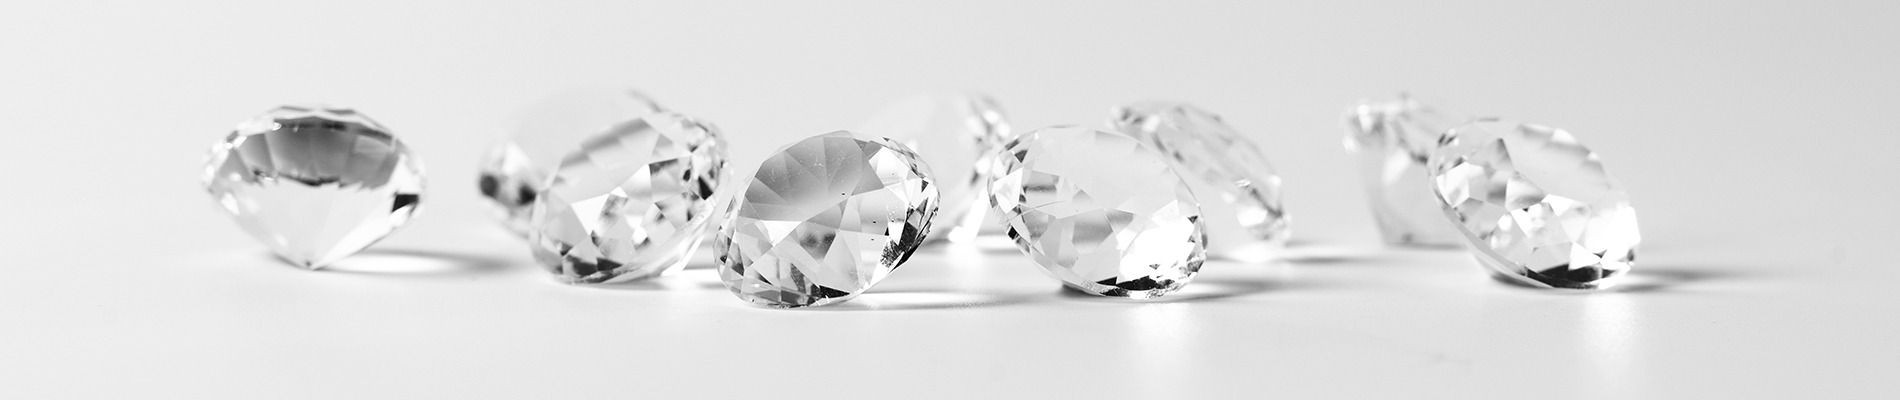 Dallas Diamond Factory has an excellent selection of Lab-Grown Diamonds